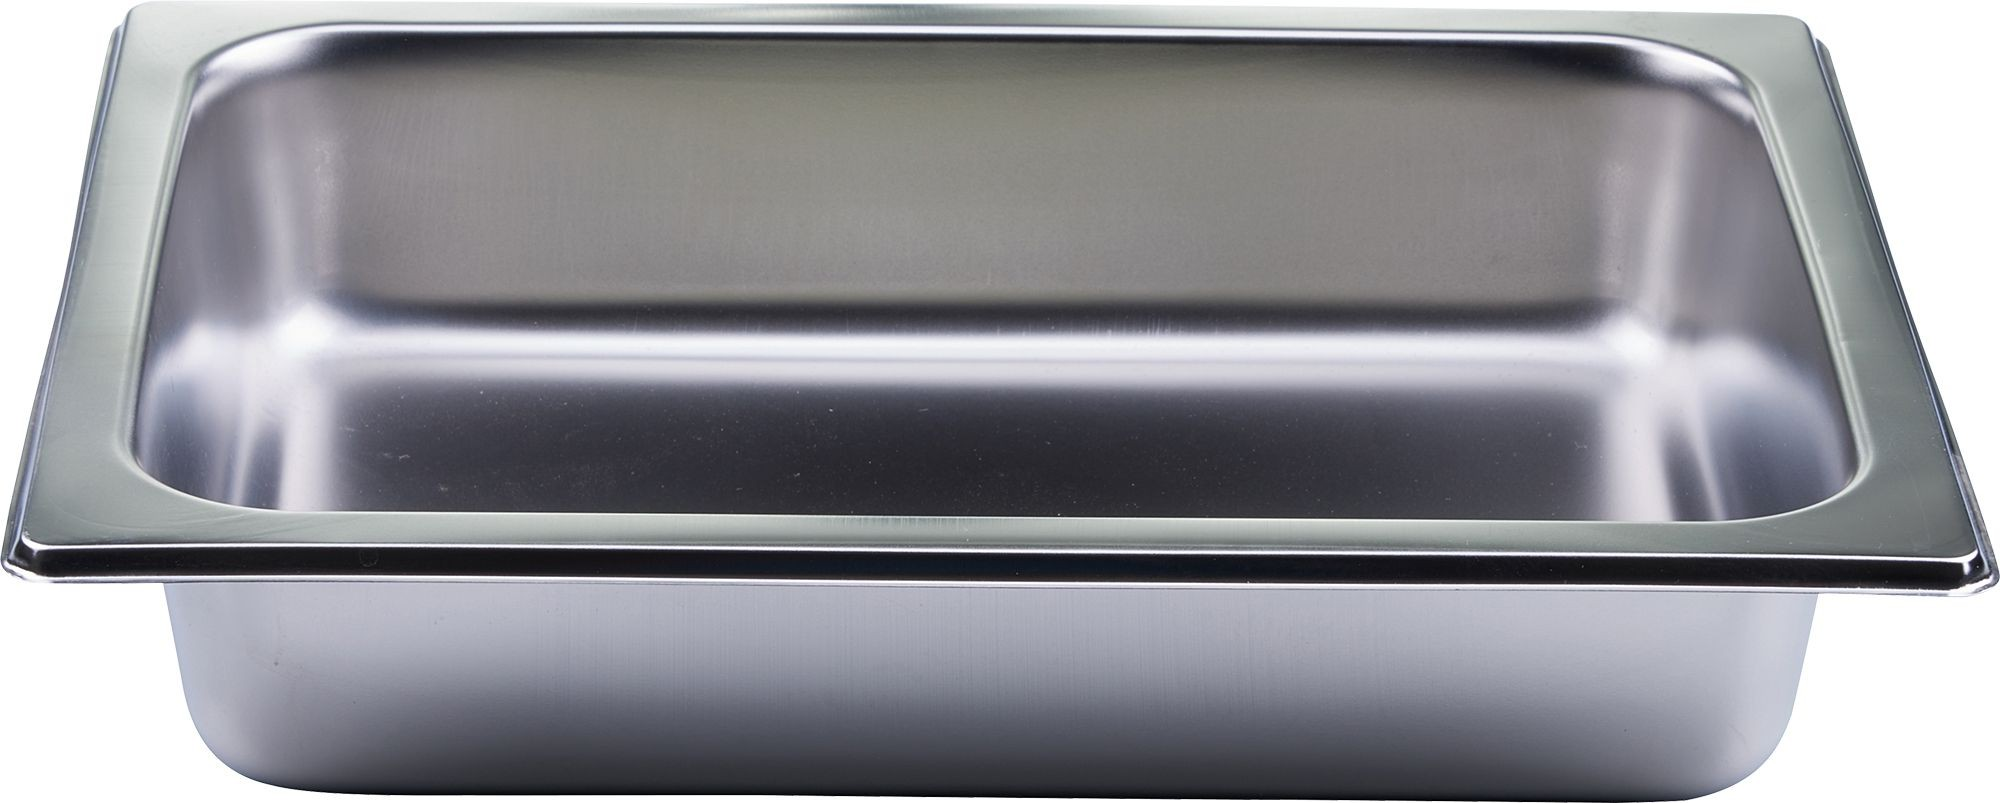 Winco 508-fp Food Pan for 4 Qt. Crown Half-Size Chafer 508